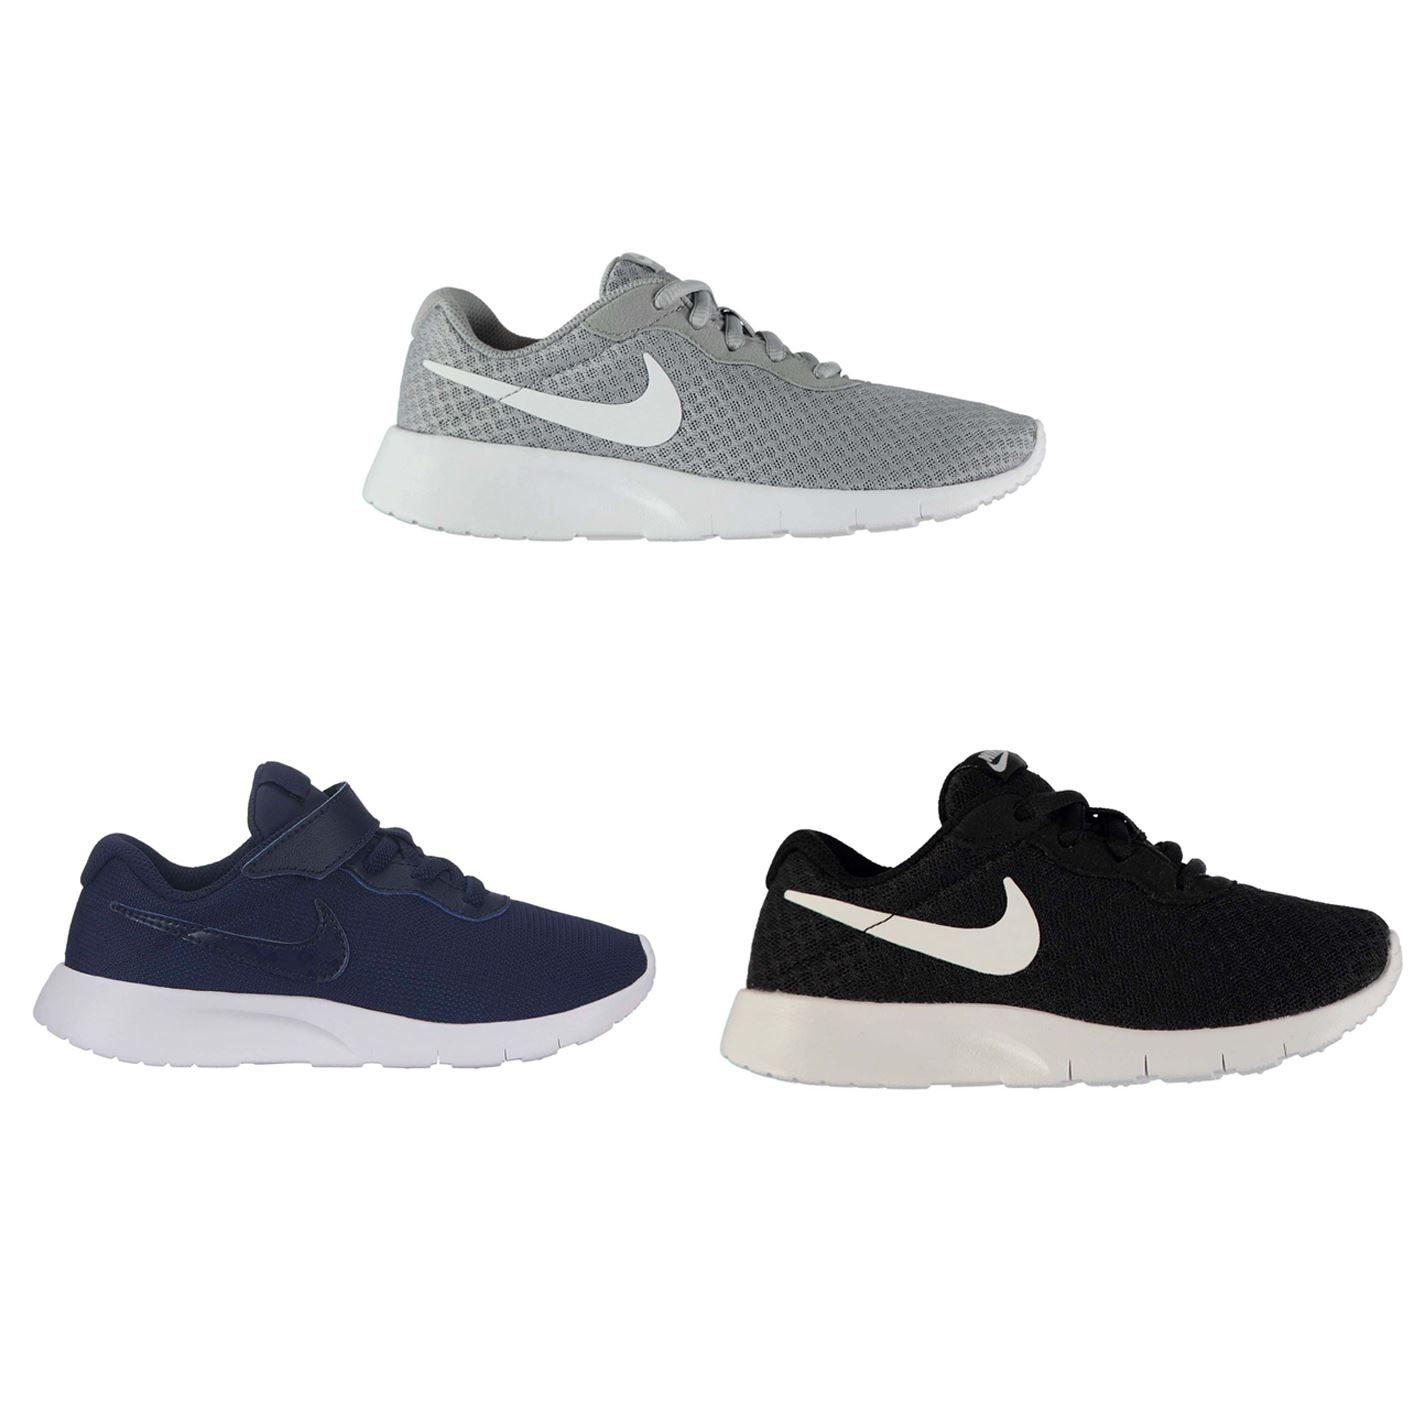 Details about Nike Tanjun Trainers Child Boys Shoes Footwear